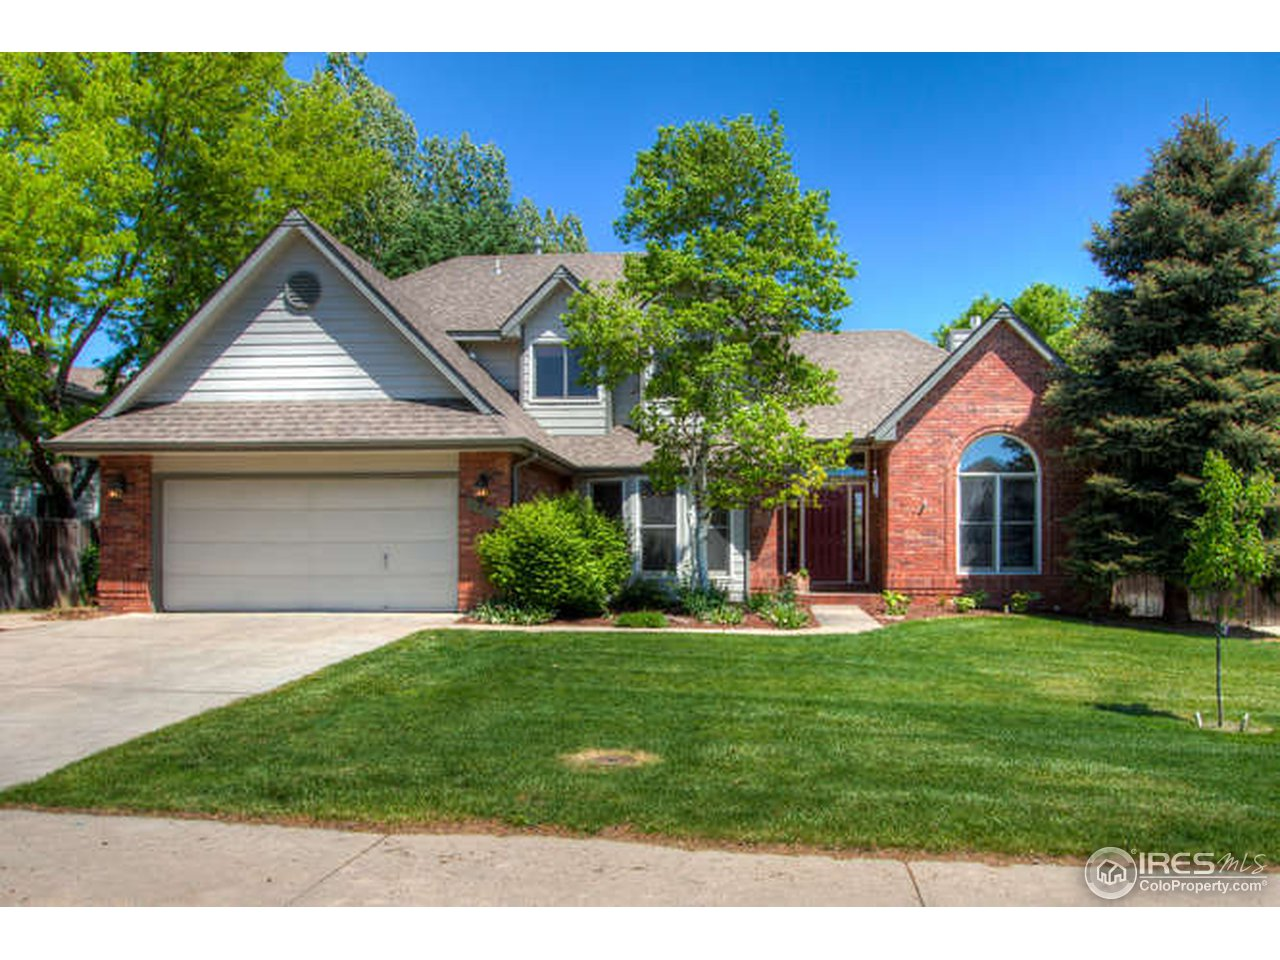 1548 41st Ave, Greeley CO 80634